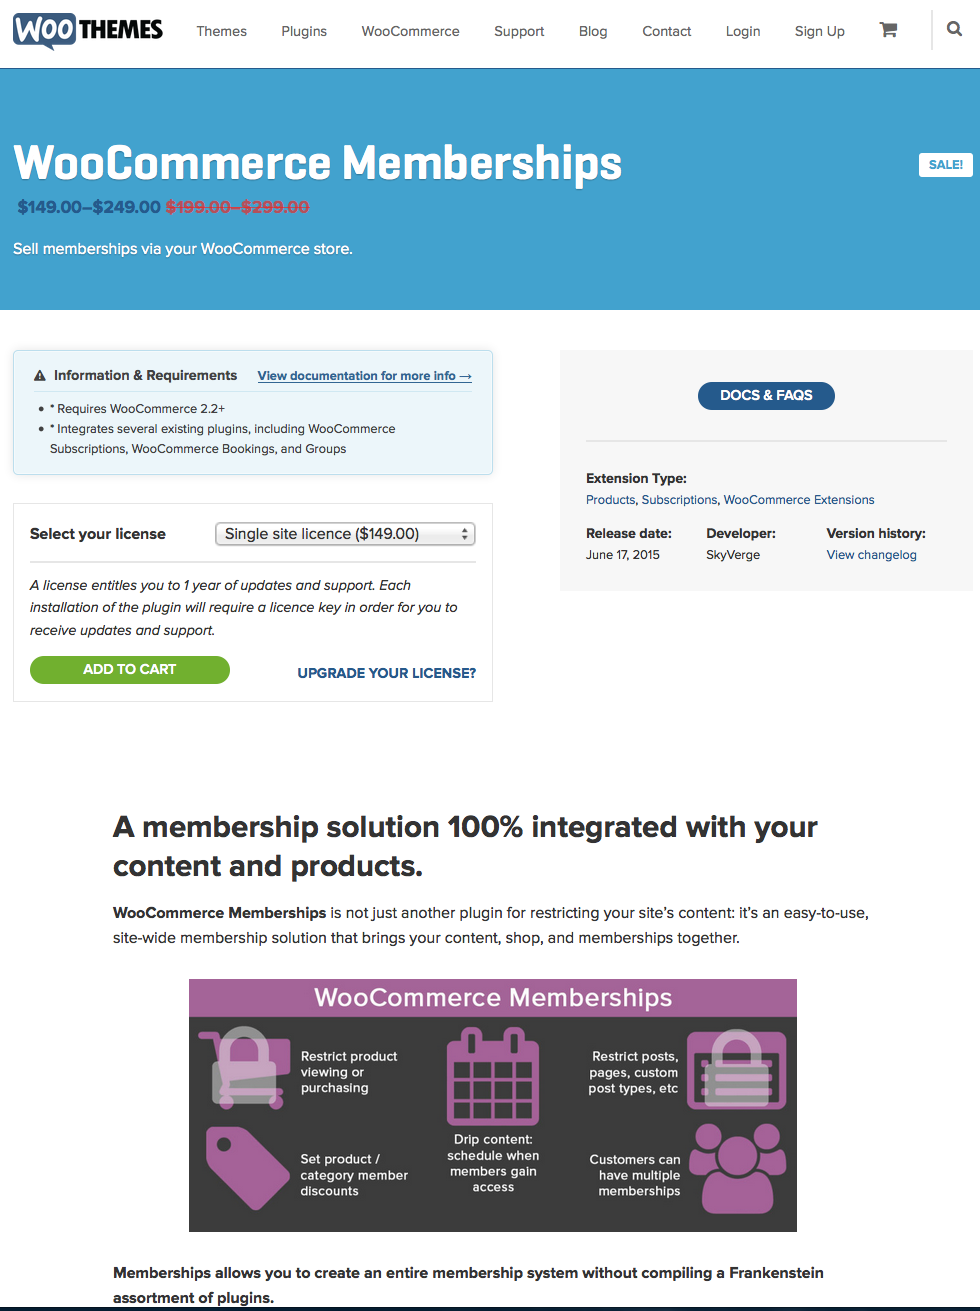 WooCommerce-Memberships